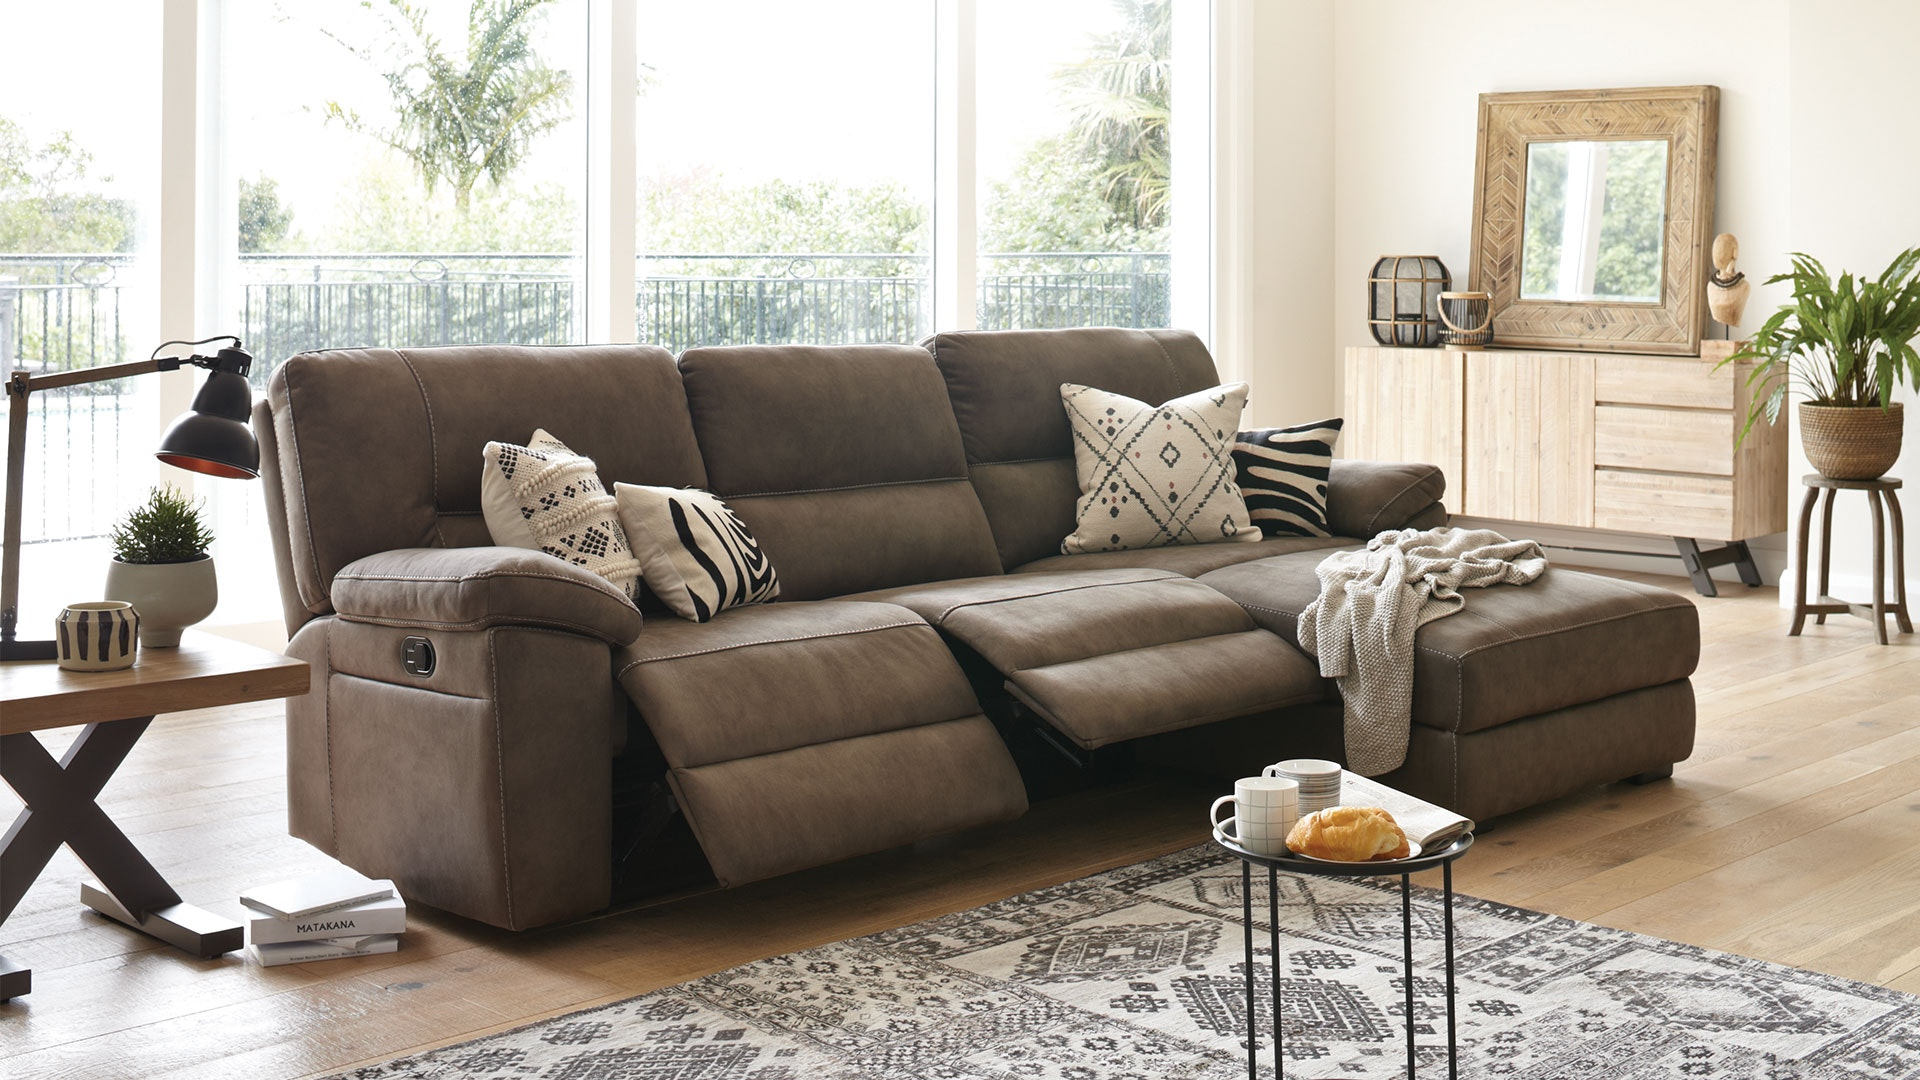 Jenson 3 Seater Fabric Recliner Sofa with Chaise by Synargy